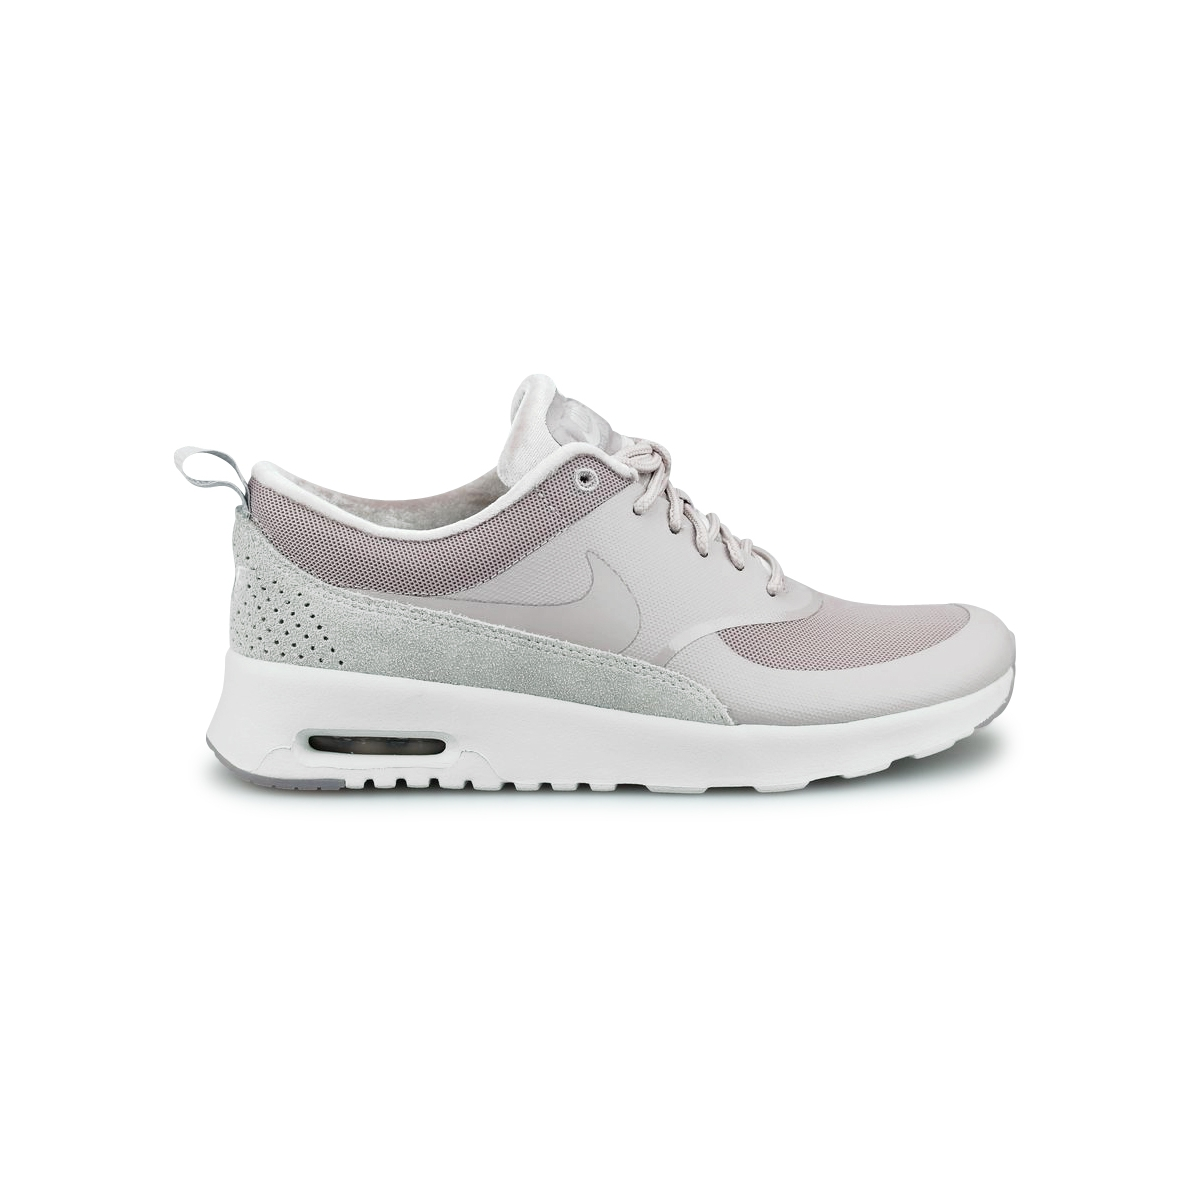 WMNS NIKE AIR MAX THEA LX ROSE 881203 600